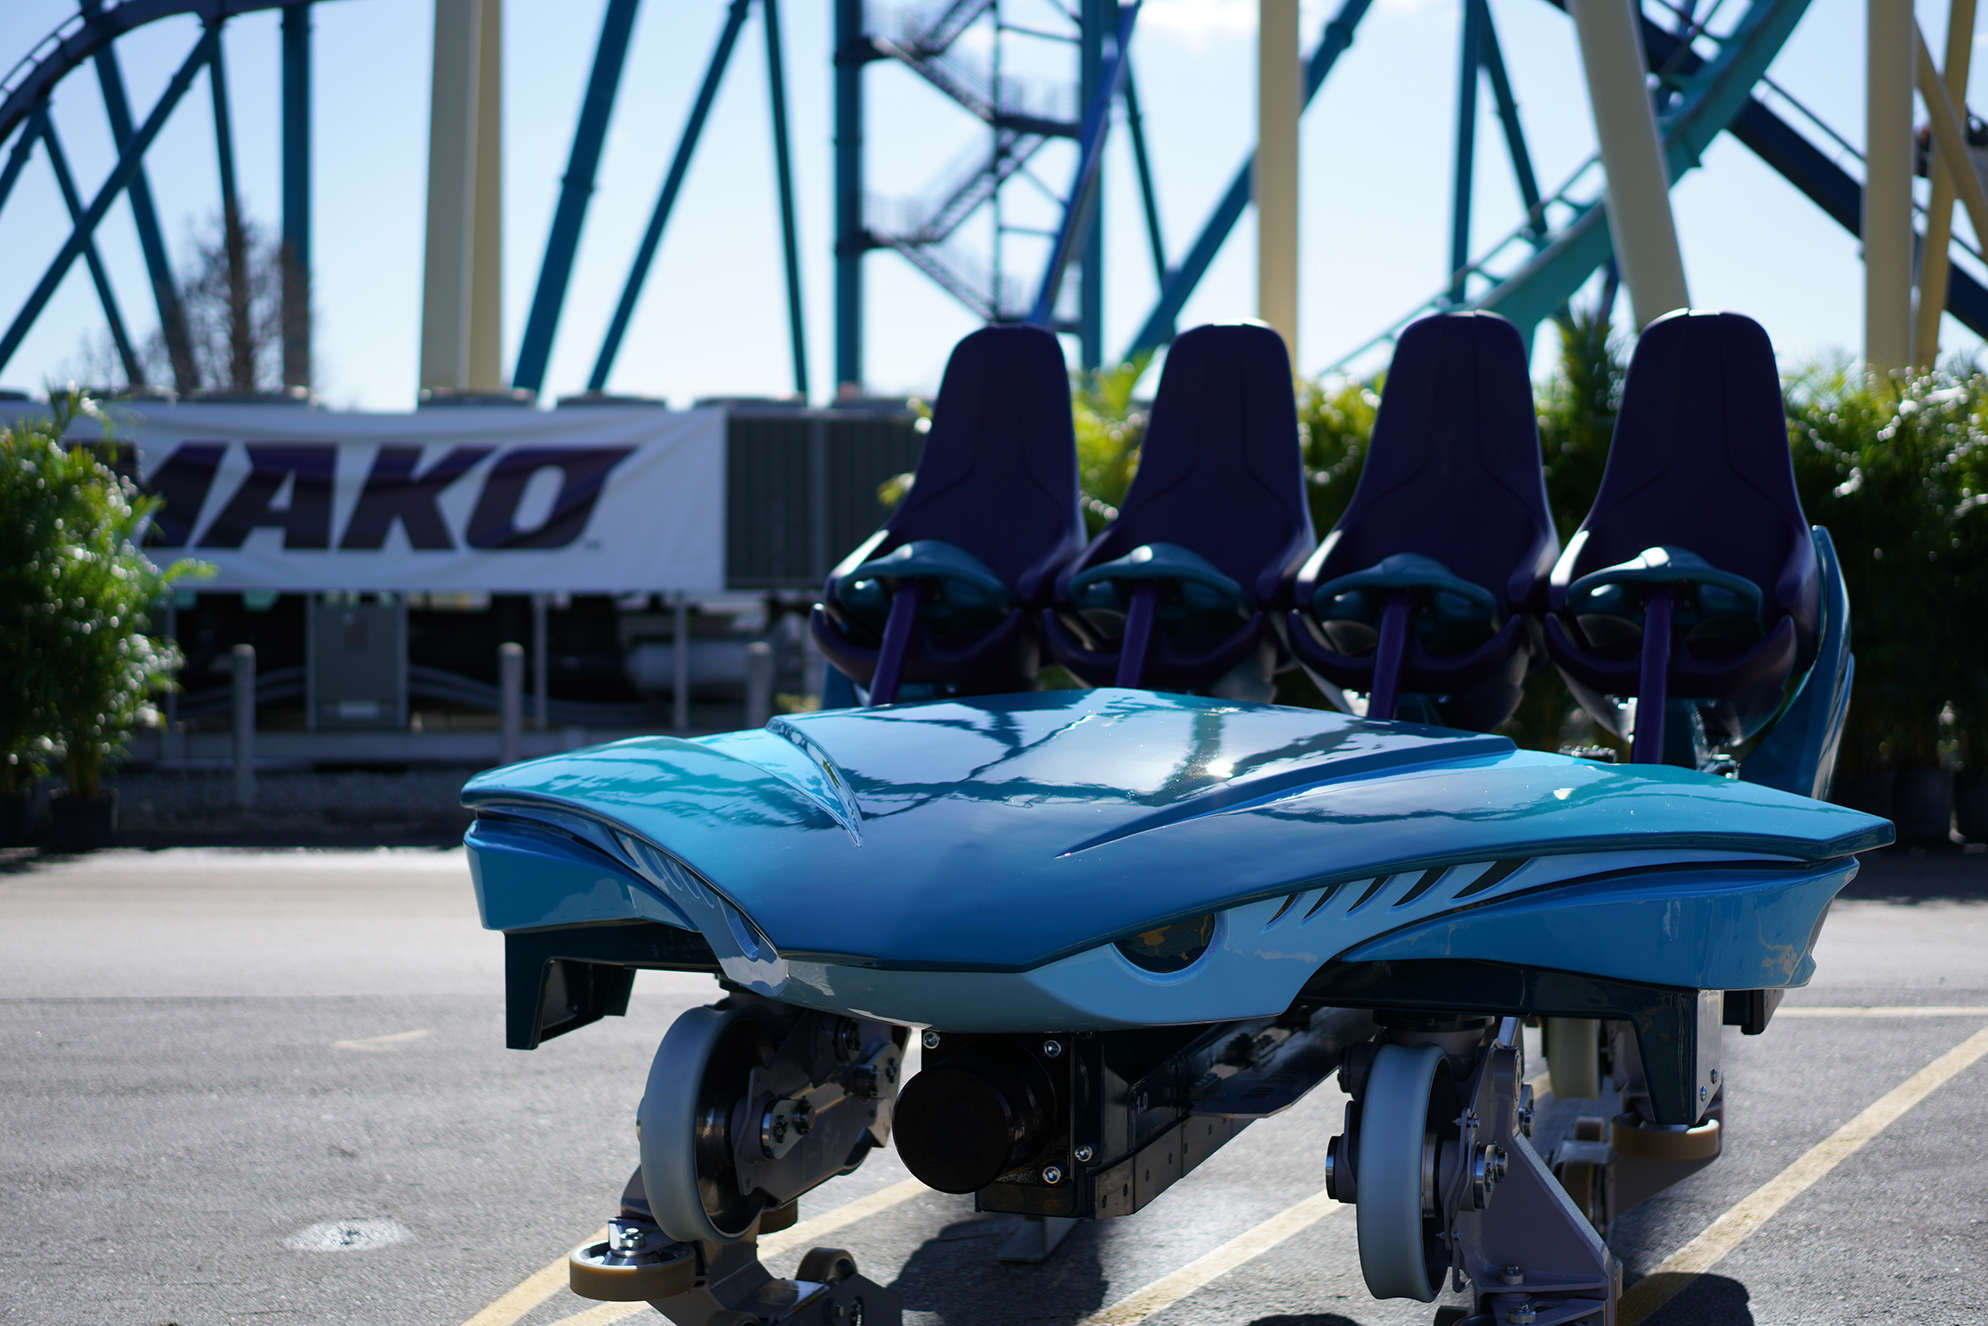 Mako ride vehicles unveiled at SeaWorld Orlando